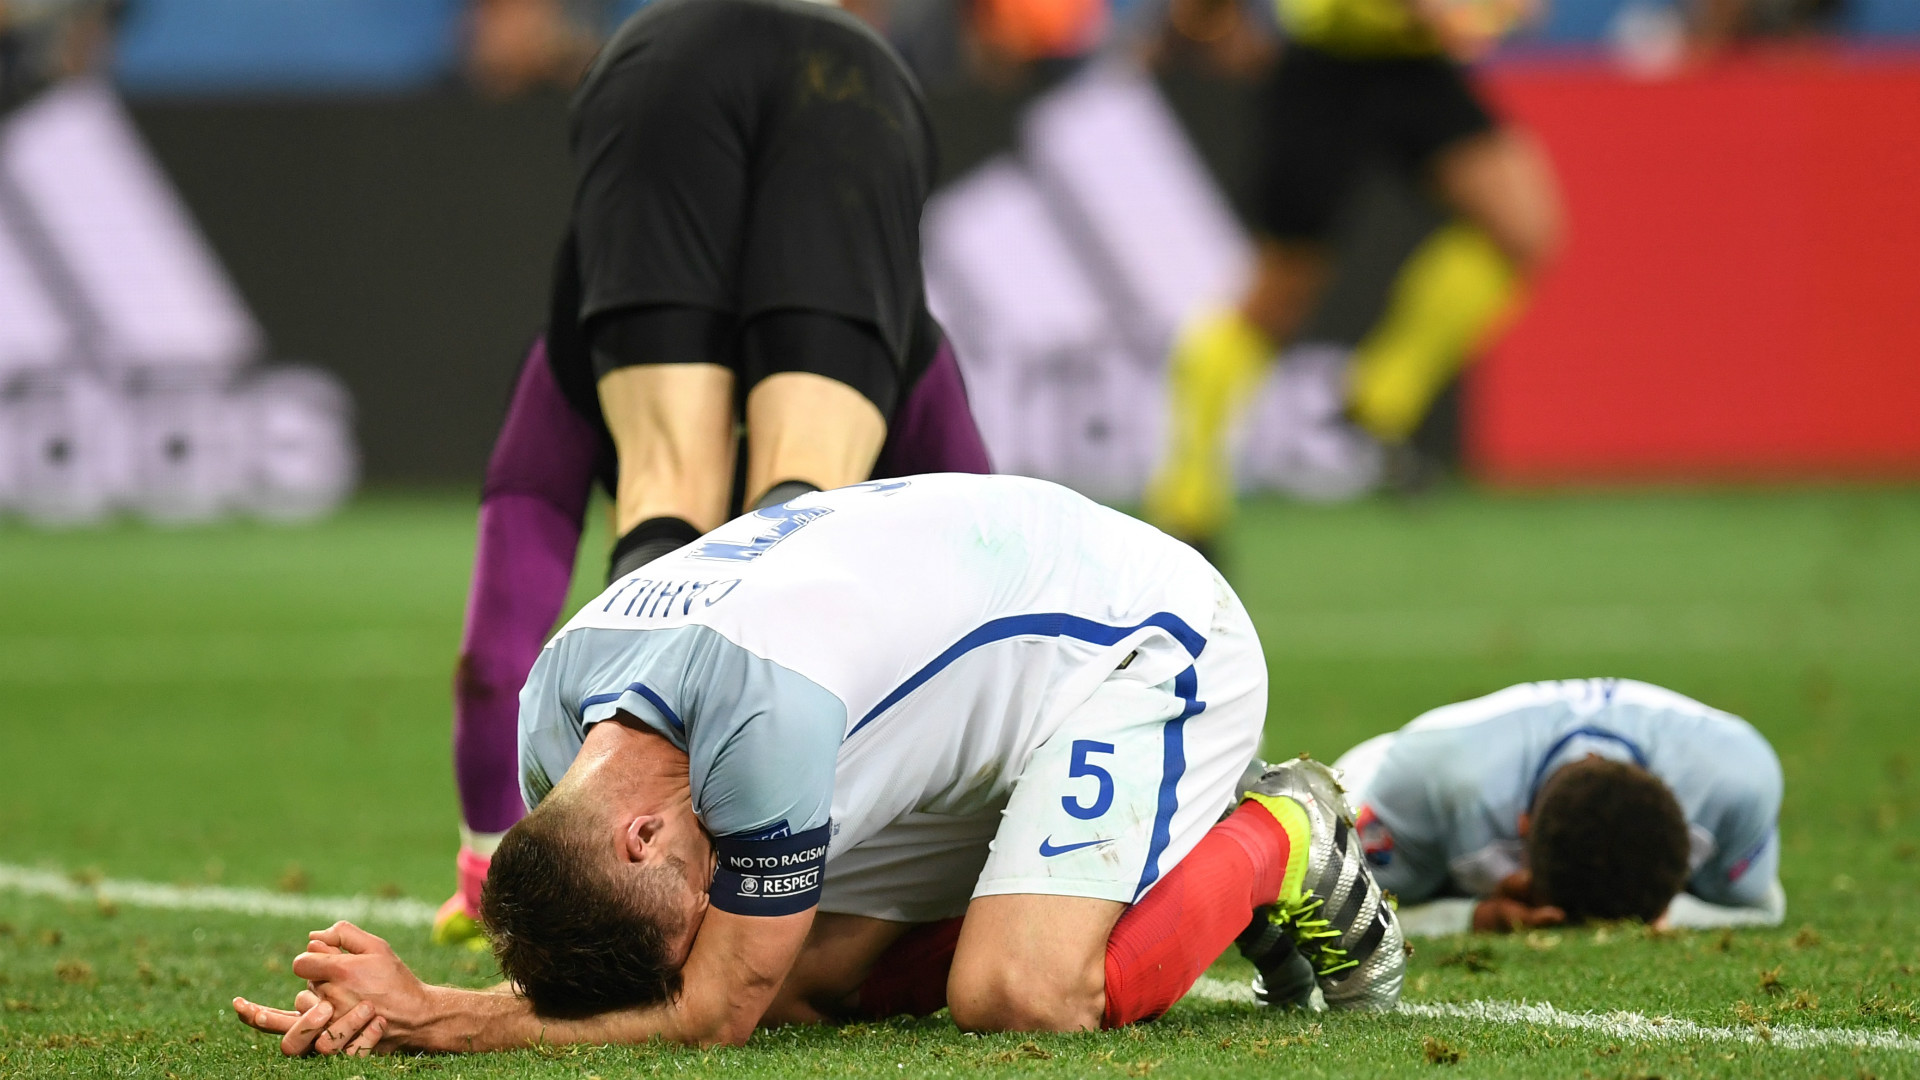 England has better chance against Brazil than Sweden, says Sven-Goran Eriksson